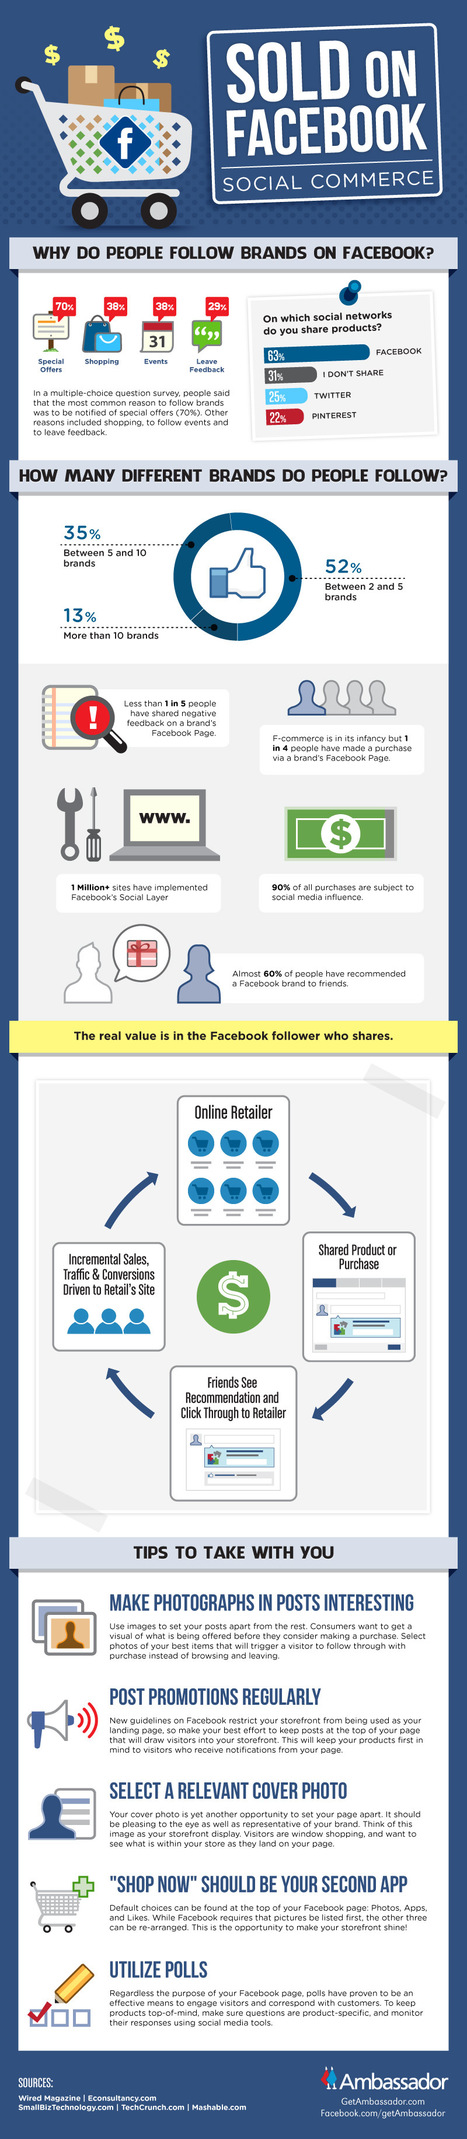 INFOGRAPHIC: What Makes People Sold On Brands On Facebook? | SOCIALFAVE - Complete #SMM platform to organize, discover, increase, engage and save time the smartest way. #TOP10 #Twitter platforms | Scoop.it